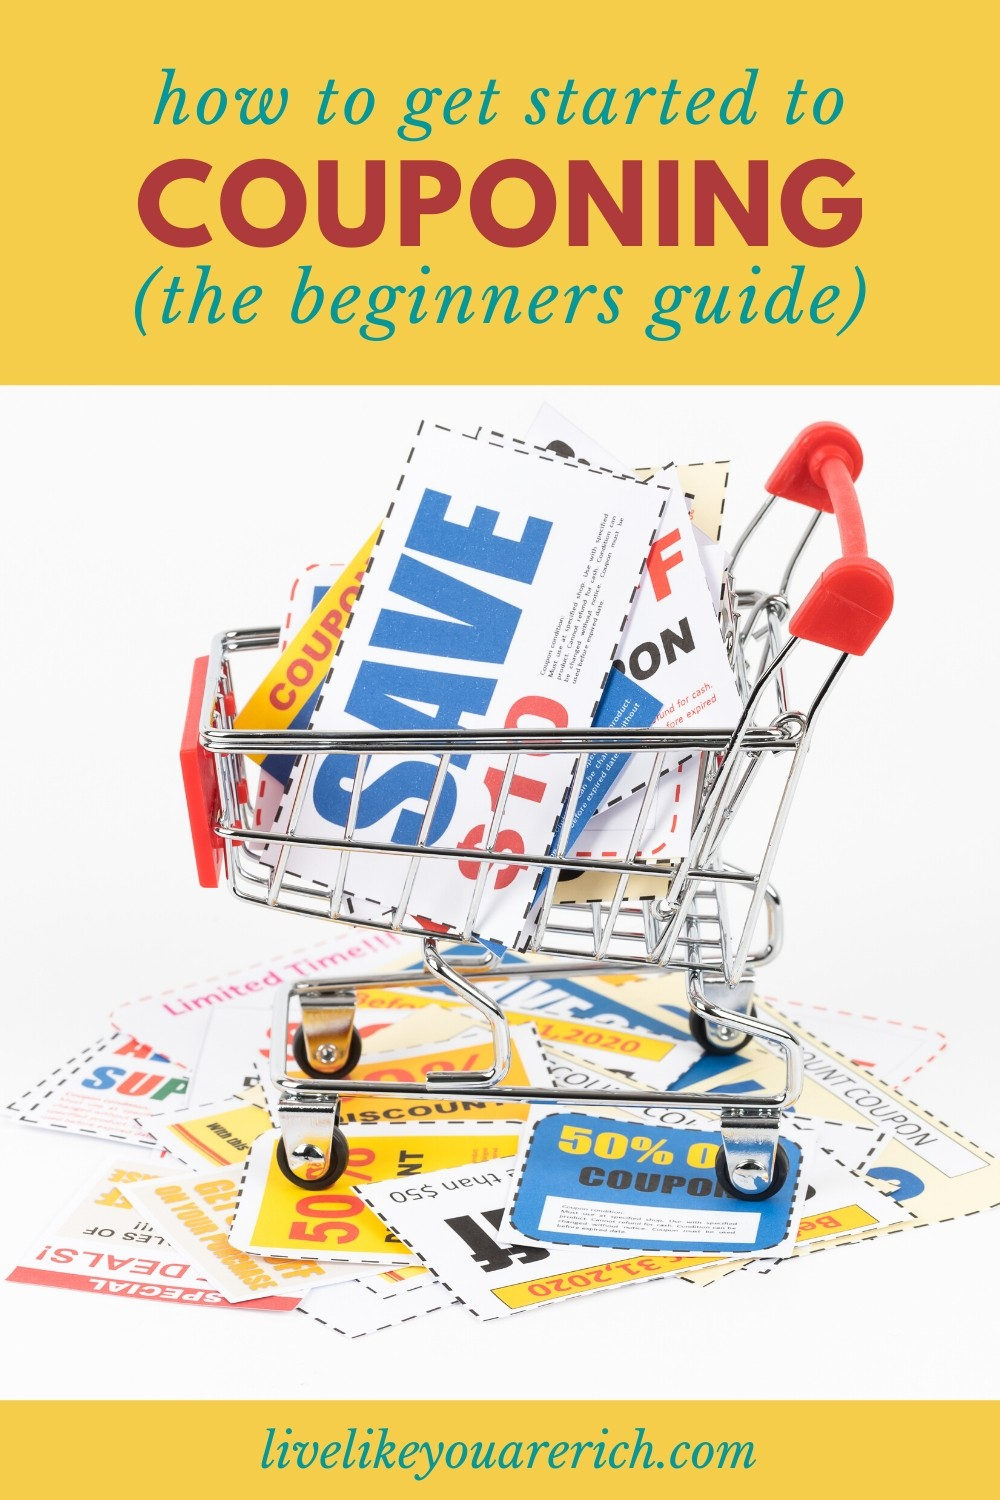 I have been couponing for over a decade. I have saved over $25,000 couponing (over $250/month). If you haven't gotten into couponing, now is a great time. I'm sharing my 11 tips on how to start couponing for beginners that will save you thousands.